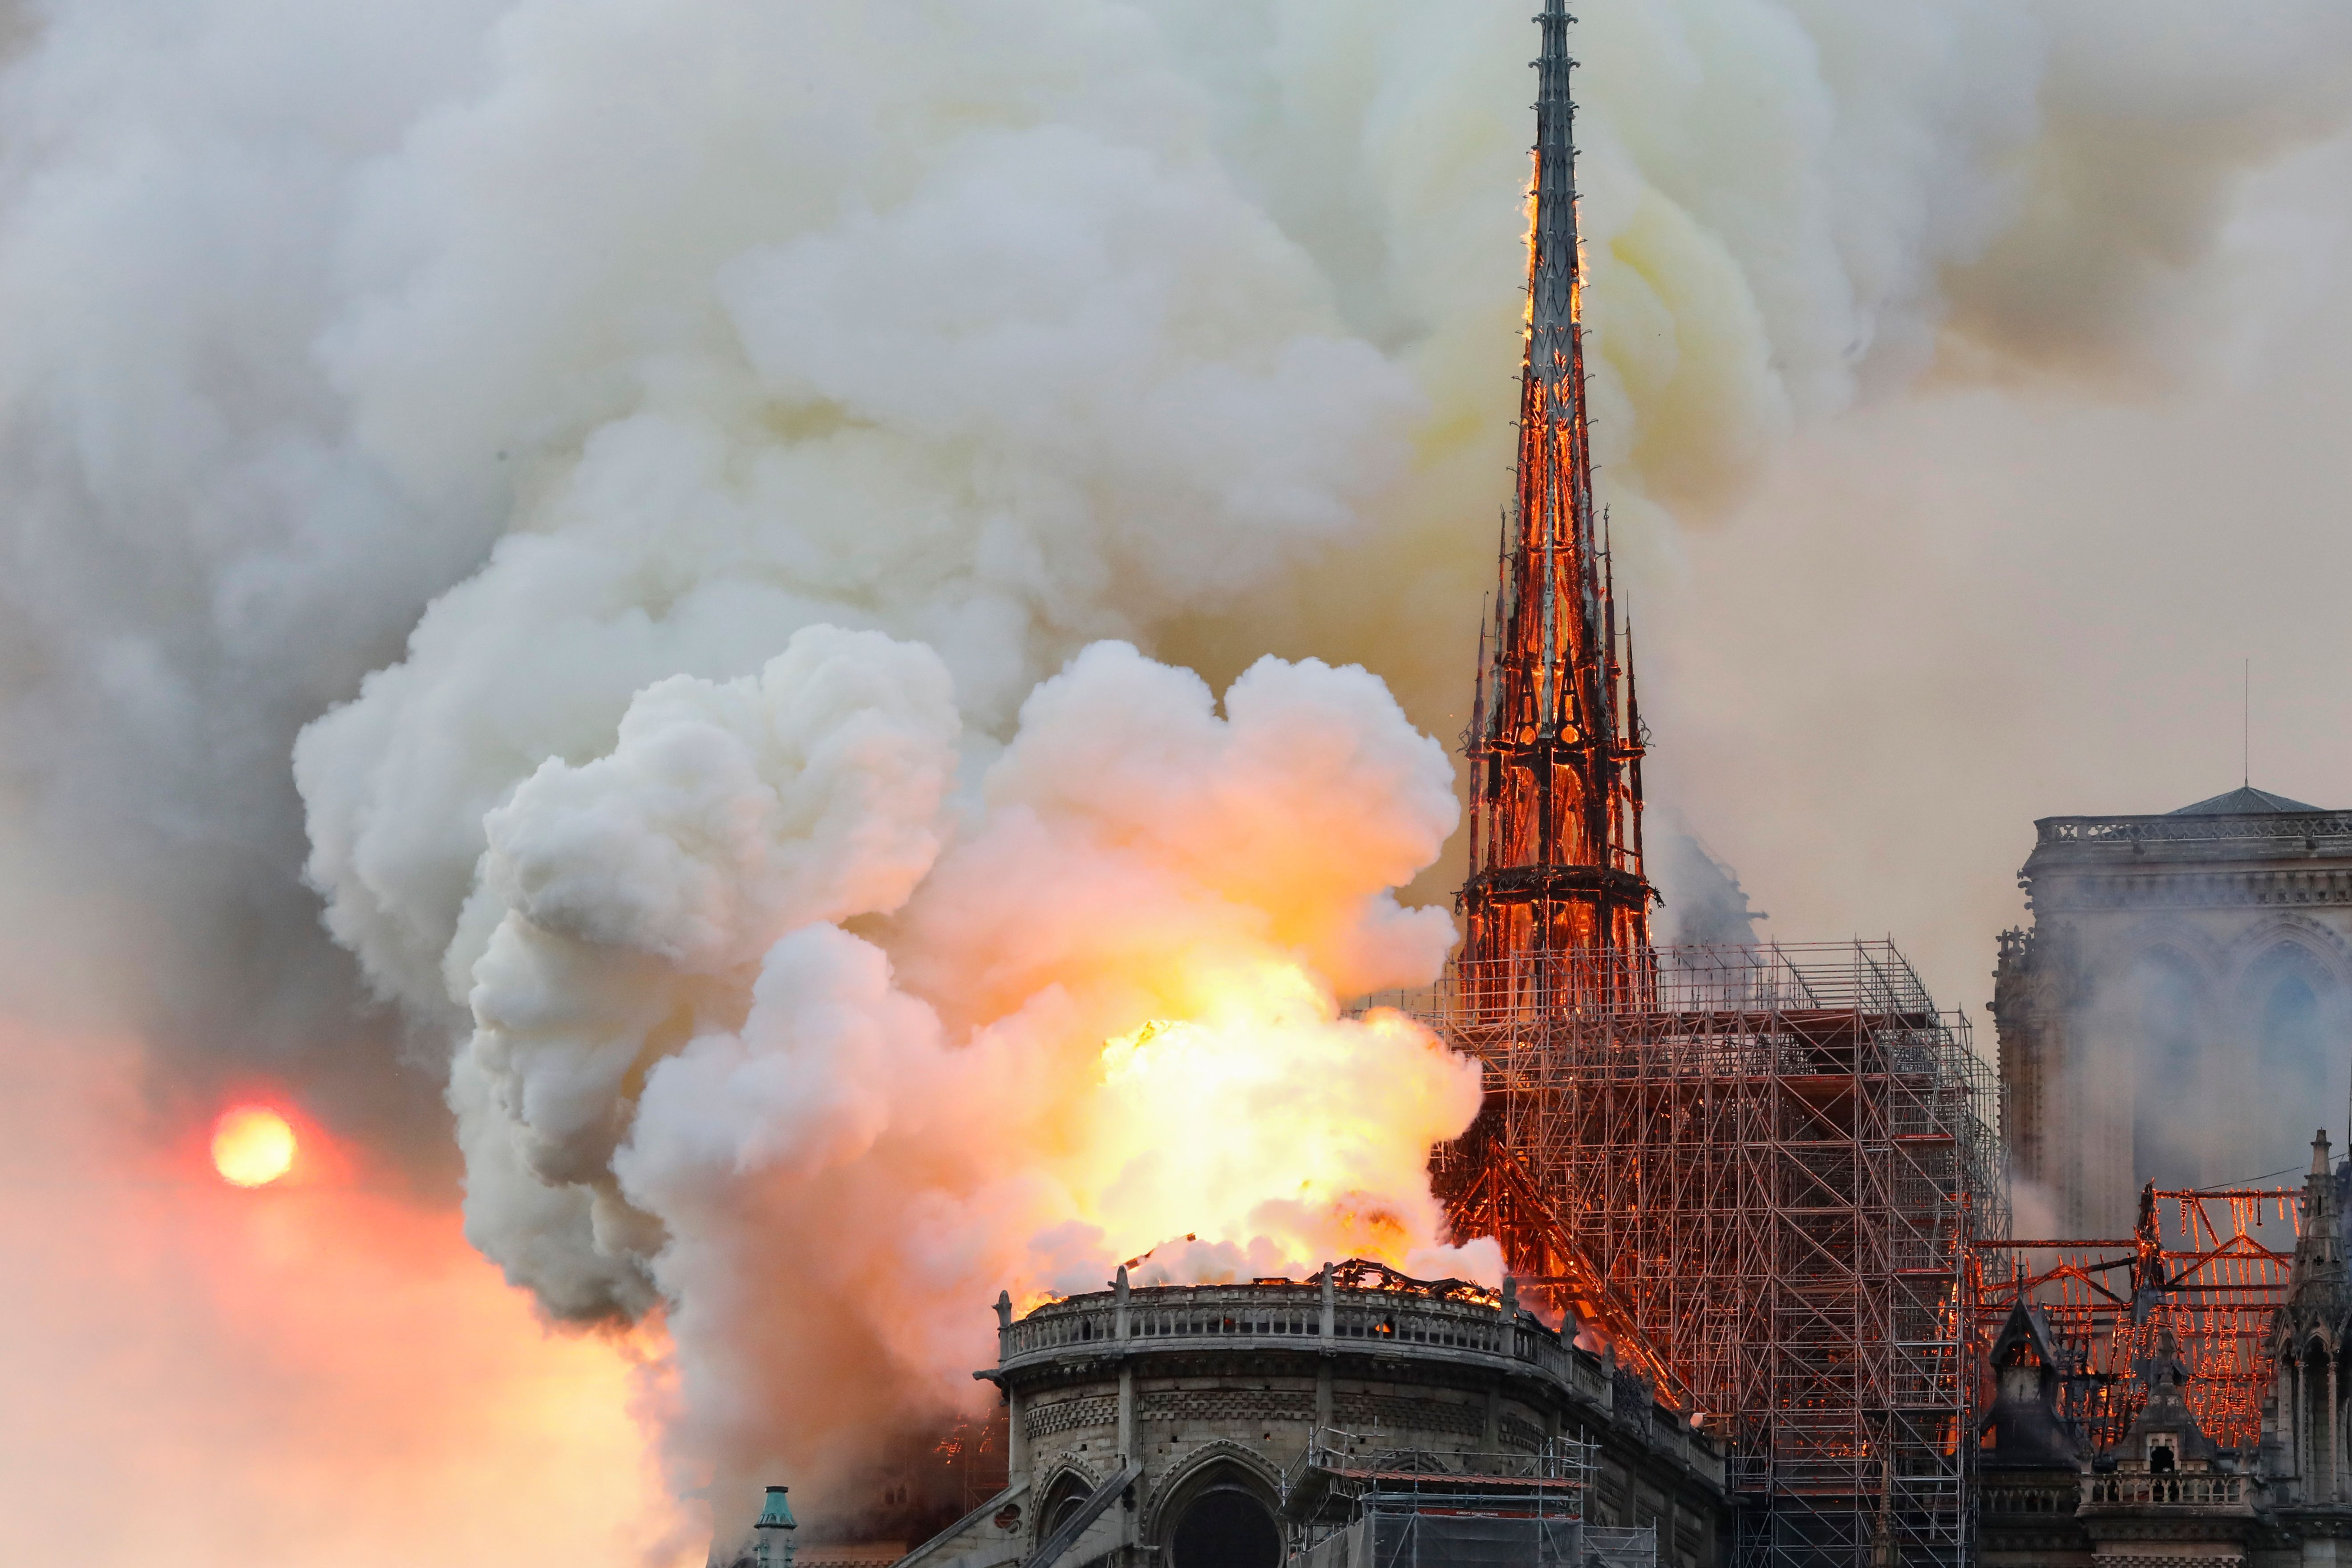 TOPSHOT - Smoke and flames rise during a fire at the landmark Notre-Dame Cathedral in central Paris on April 15, 2019, potentially involving renovation works being carried out at the site, the fire service said. - A major fire broke out at the landmark Notre-Dame Cathedral in central Paris sending flames and huge clouds of grey smoke billowing into the sky, the fire service said. The flames and smoke plumed from the spire and roof of the gothic cathedral, visited by millions of people a year, where renovations are currently underway. (Photo by FRANCOIS GUILLOT / AFP)        (Photo credit should read FRANCOIS GUILLOT/AFP/Getty Images)